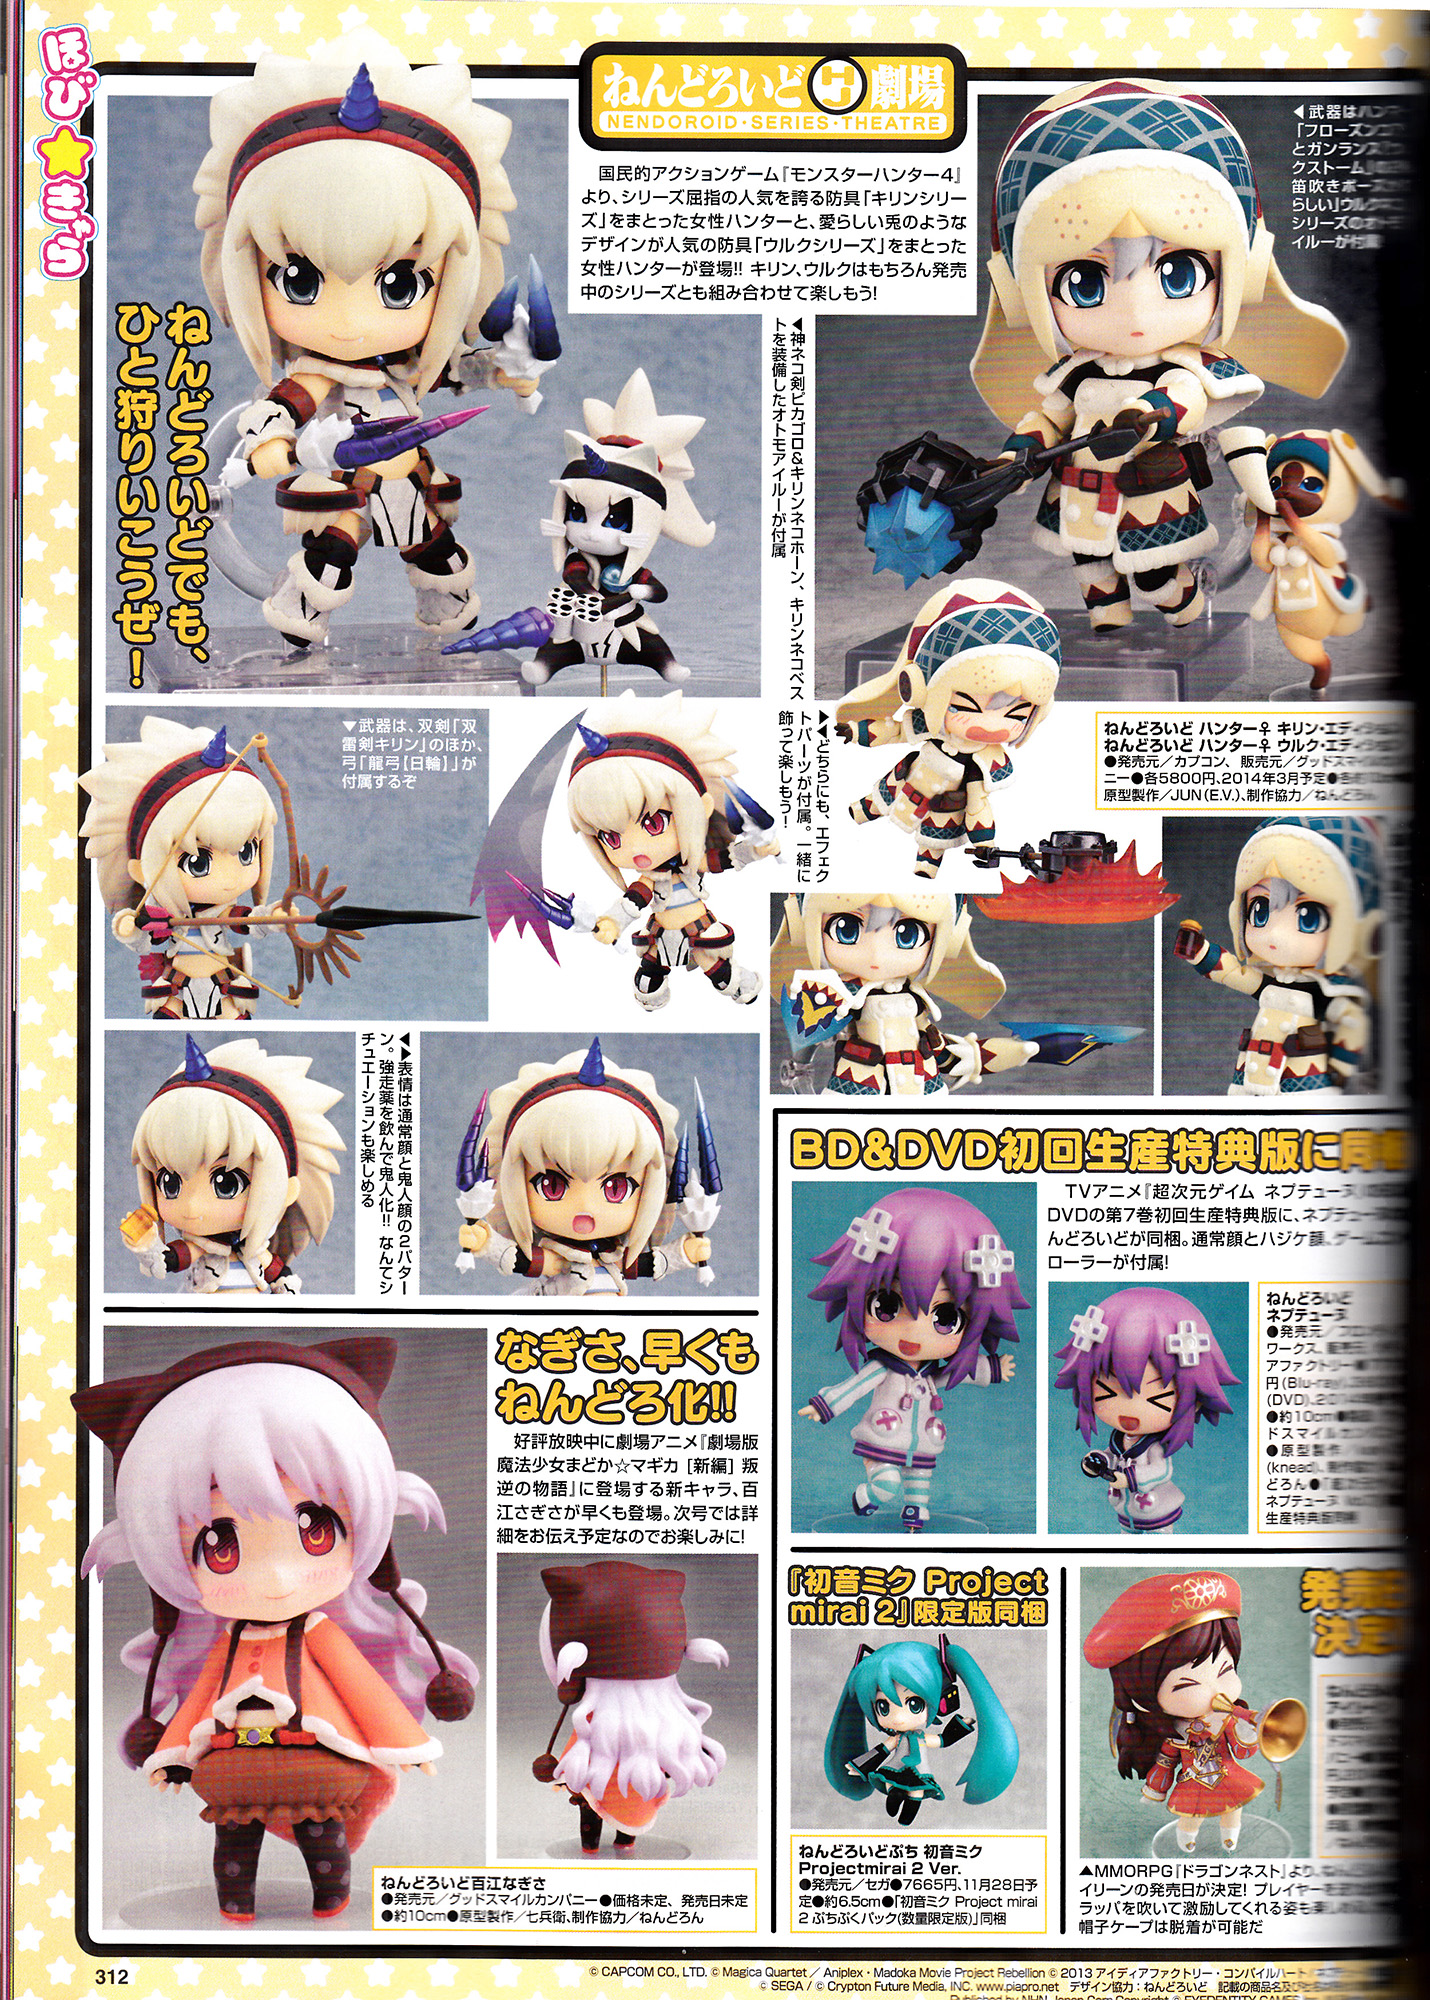 vocaloid nendoroid_petit sega nendoroid capcom hatsune_miku good_smile_company hunter airou nendoron ageta_yukiwo jun_(e.v.) crypton_future_media frontier_works neptune knead_k@z shirasaki_isao dragon_nest irine shichibee monster_hunter_4 eyedentity_games hatsune_miku_project_mirai_2 choujigen_game_neptune:_the_animation gekijouban_mahou_shoujo_madoka★magica:_hangyaku_no_monogatari momoe_nagisa